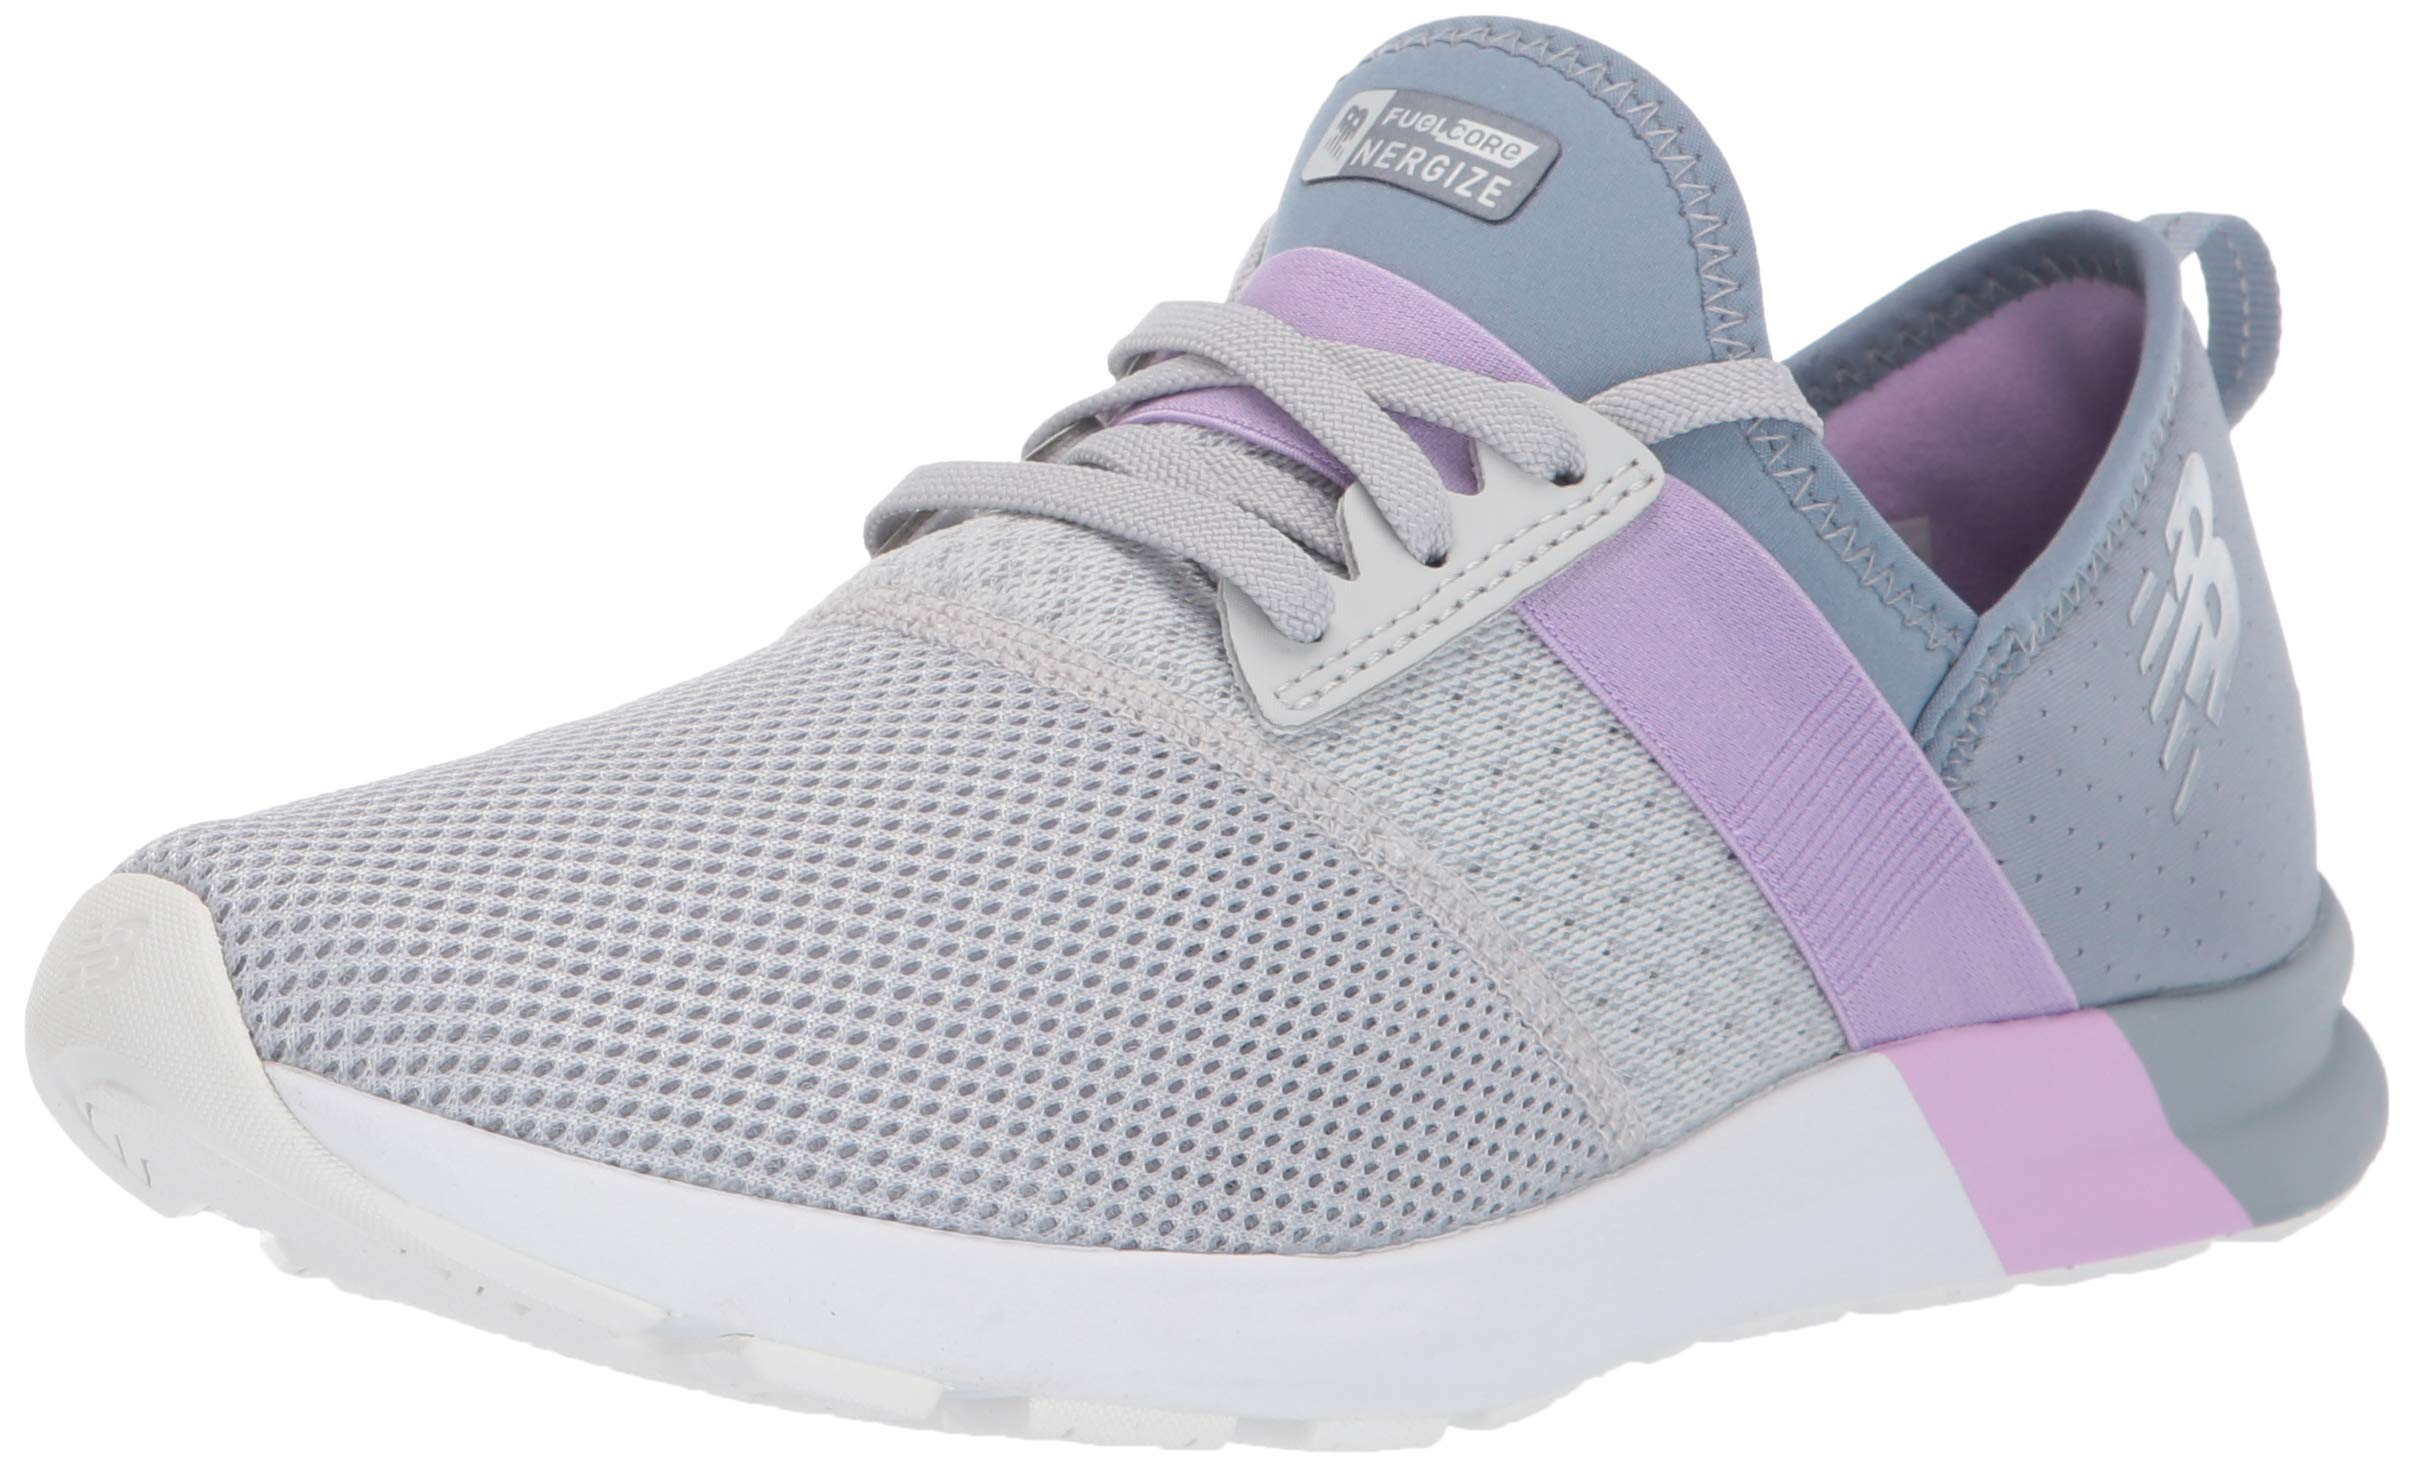 New Balance Women's FuelCore Nergize V1 Sneaker, Light Aluminum/Reflection/Dark Violet, 5 B US